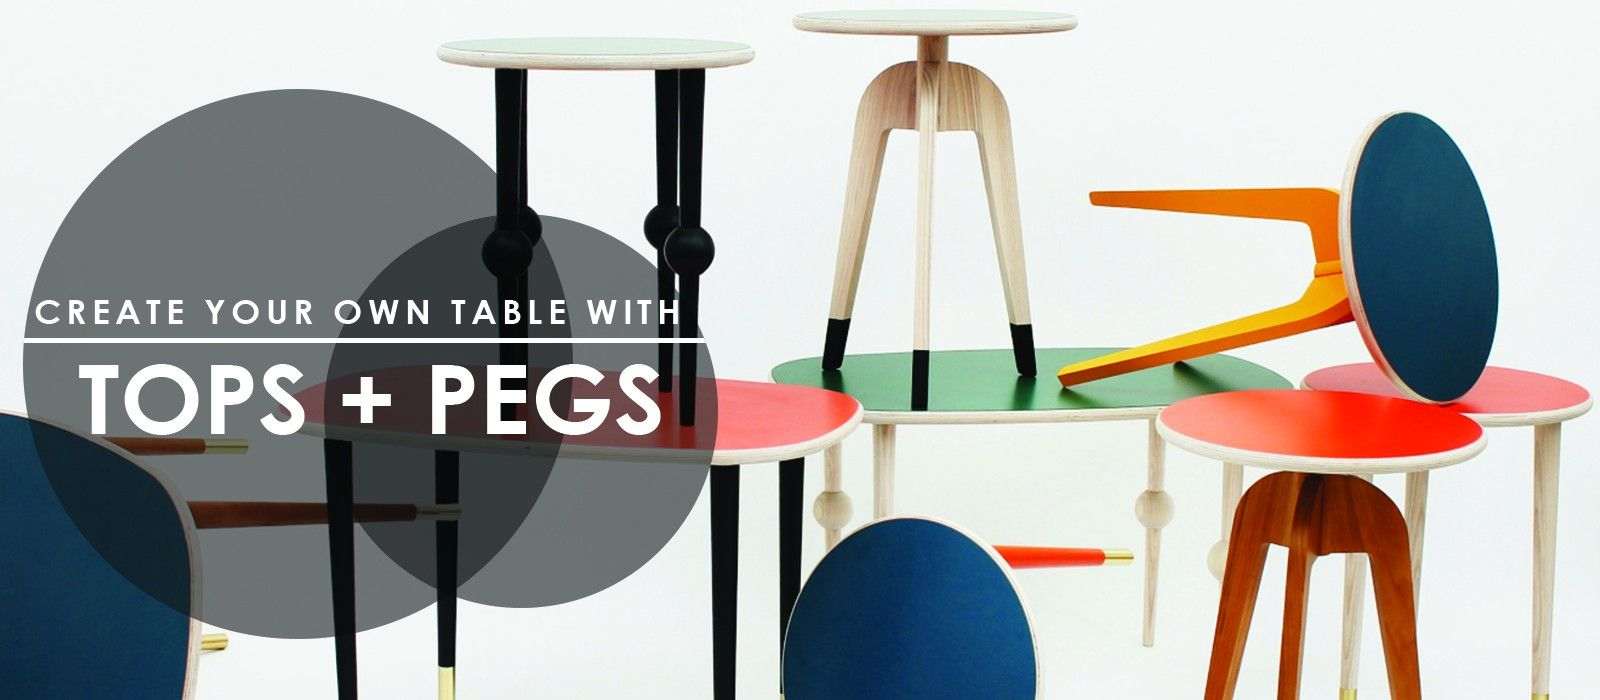 Pretty Pegs Offers Custom Legs Fitted For Ikea Furniture To